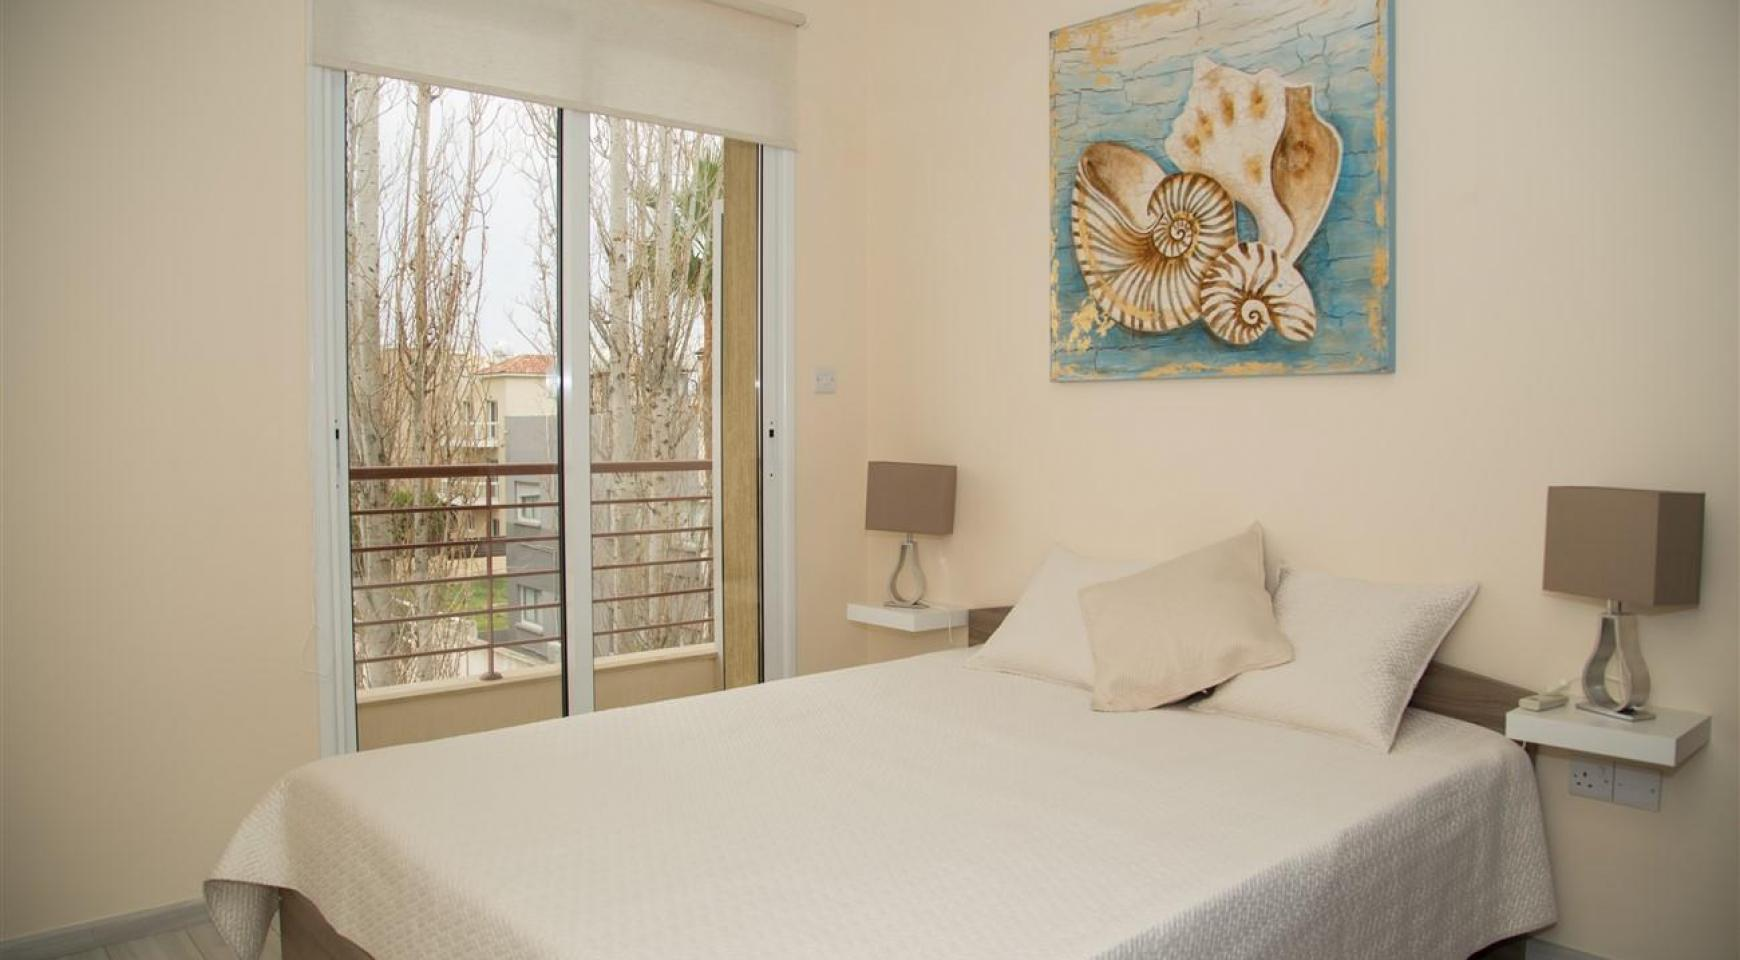 Luxury 2 Bedroom Apartment Frida 201 in the Tourist Area - 13